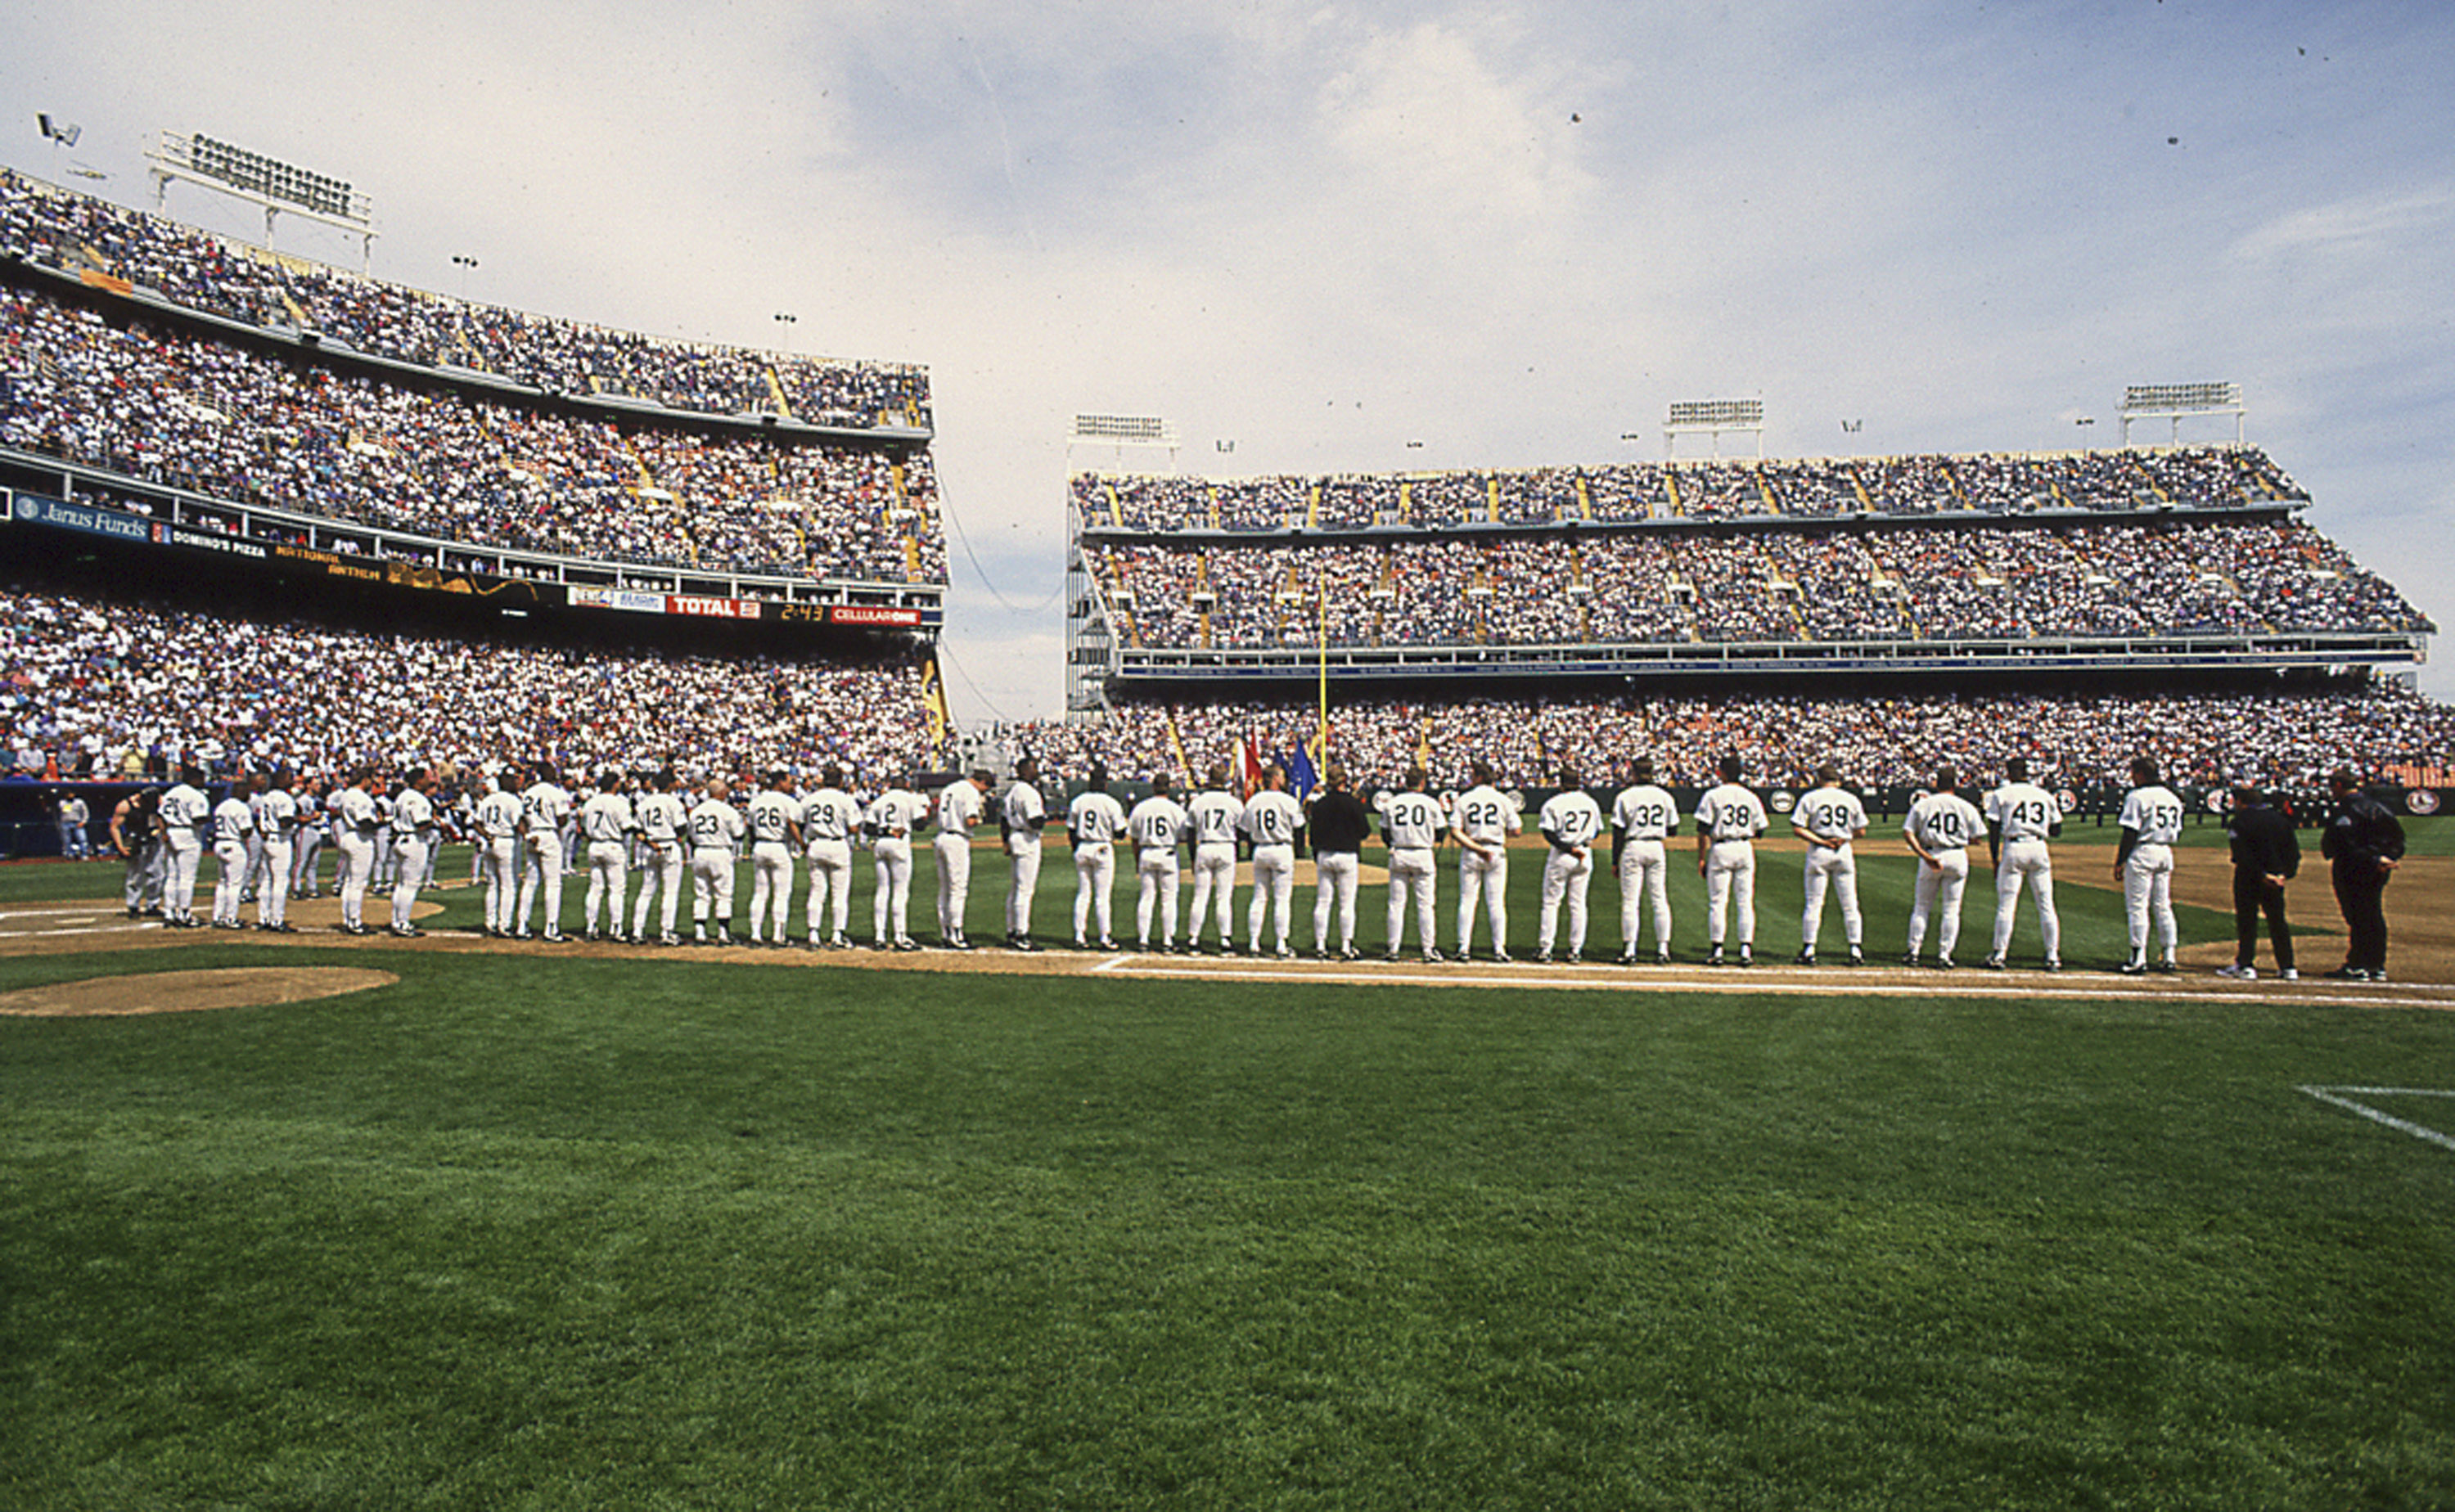 <p>The Colorado Rockies played their first two seasons, in 1993 and 1994, at Mile High Stadium.</p>